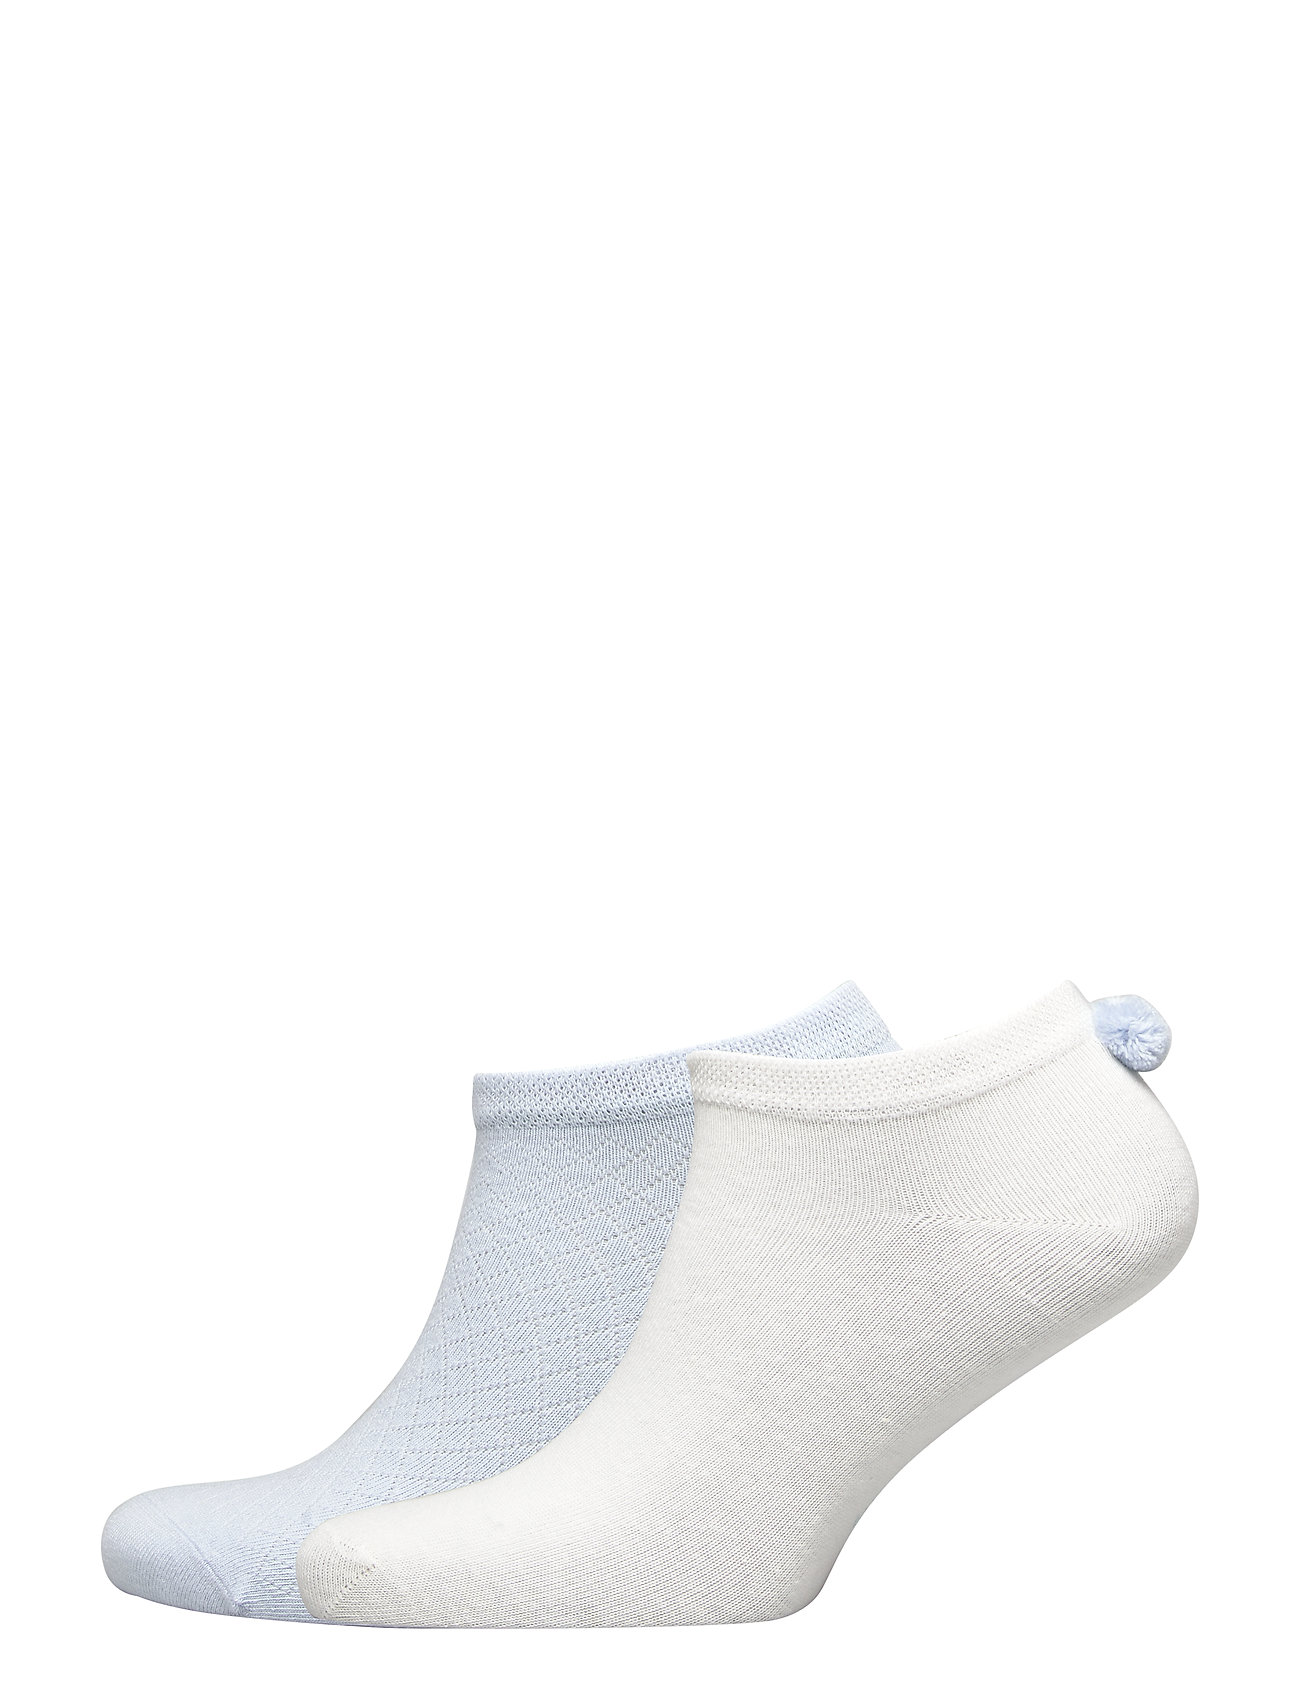 Vogue Ladies anklesock, PomPom Sneakers, 2-pack - BLUE BELL